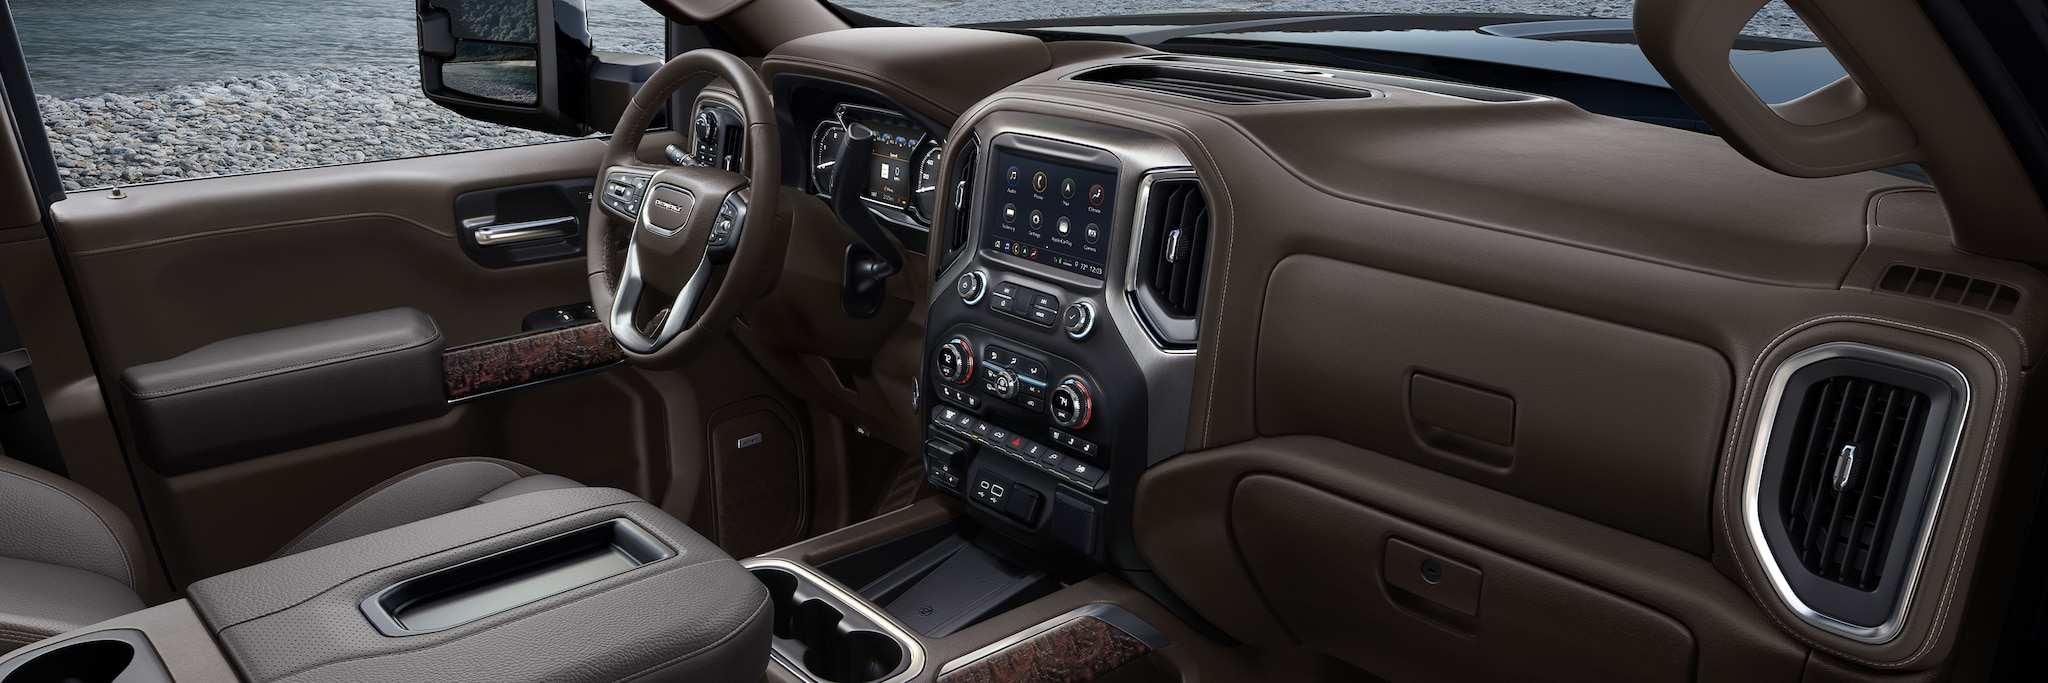 97 The 2020 Gmc Hd Interior Overview for 2020 Gmc Hd Interior